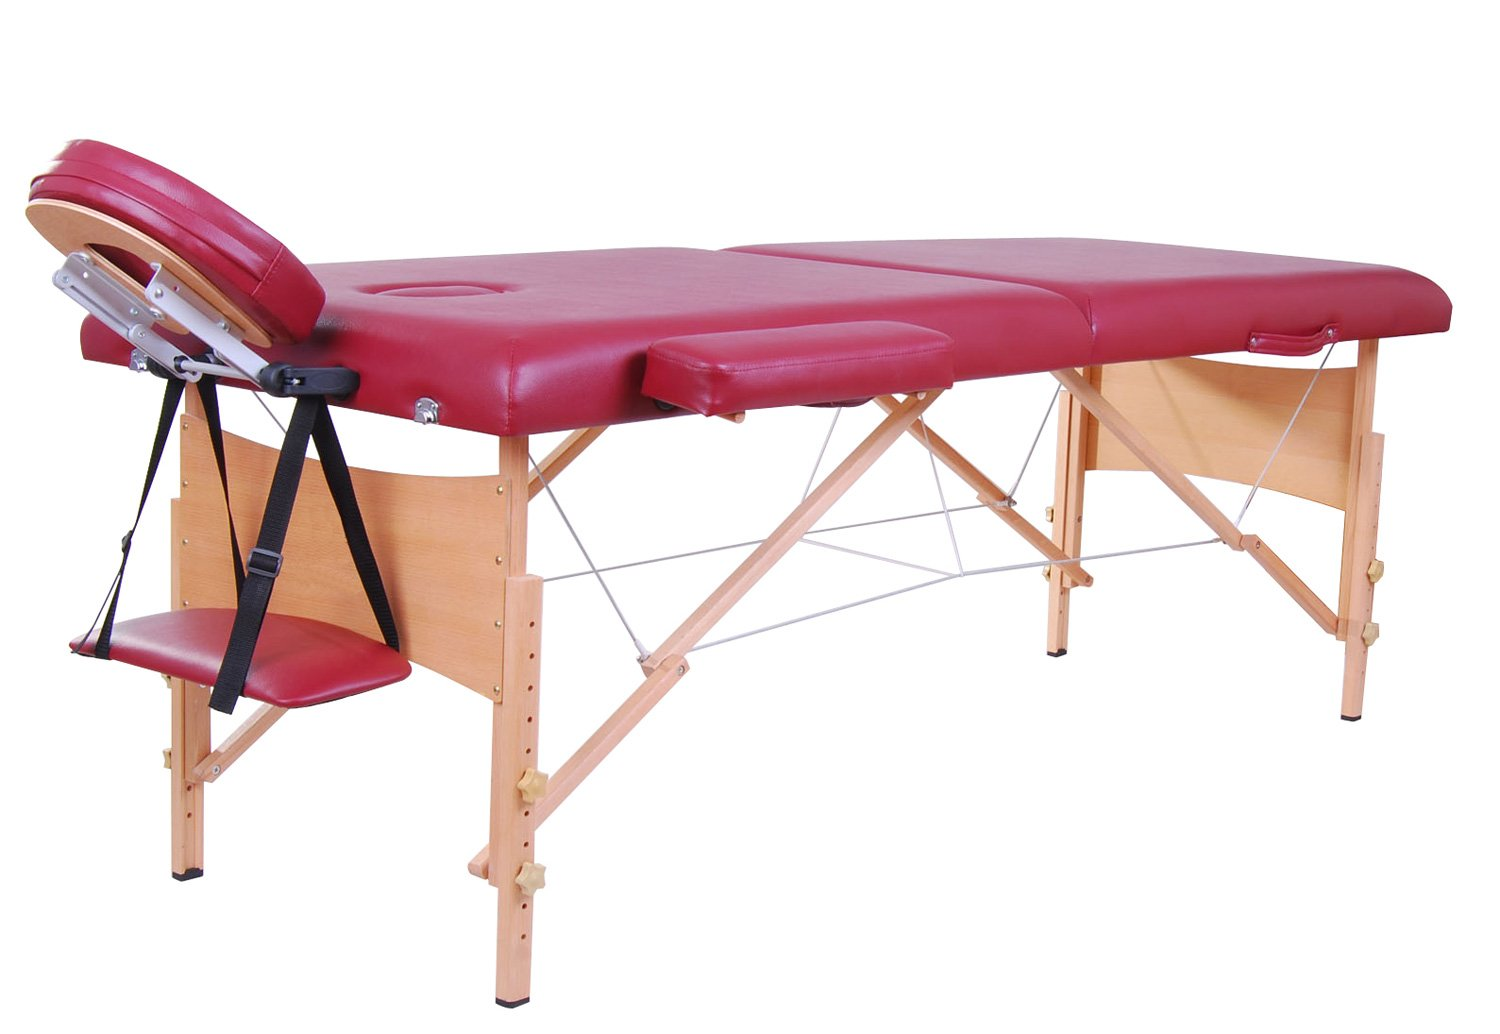 Soozier 91inches Portable Massage Table Bed Couch Spa Bed Foldable Wooden w/ Case (Black) + Carrying Bag Aosom Canada